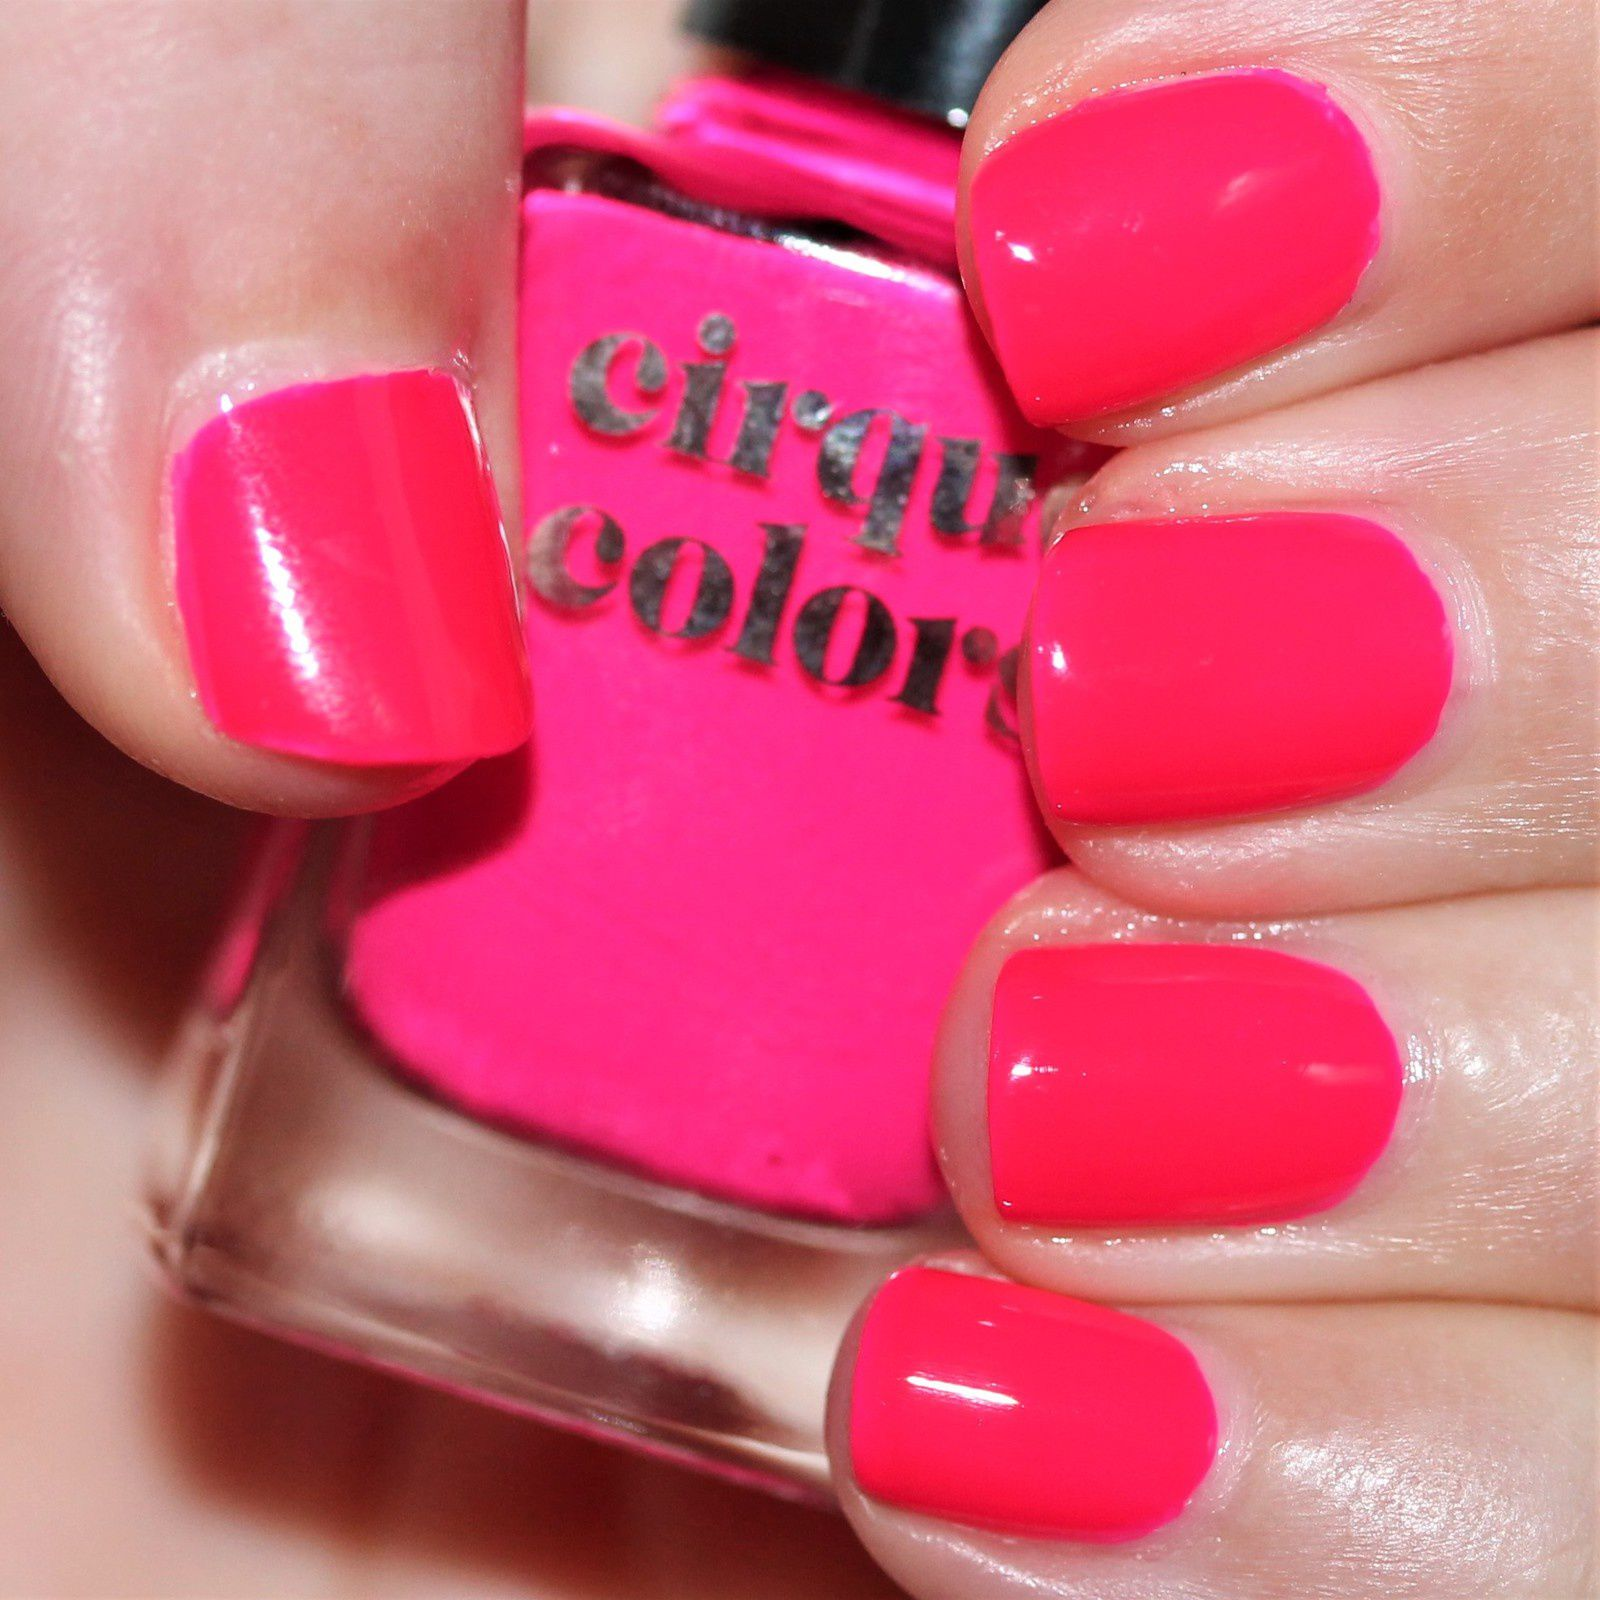 Essie Protein Base Coat / Cirque Colors Retail Therapy / HK Girl Top Coat